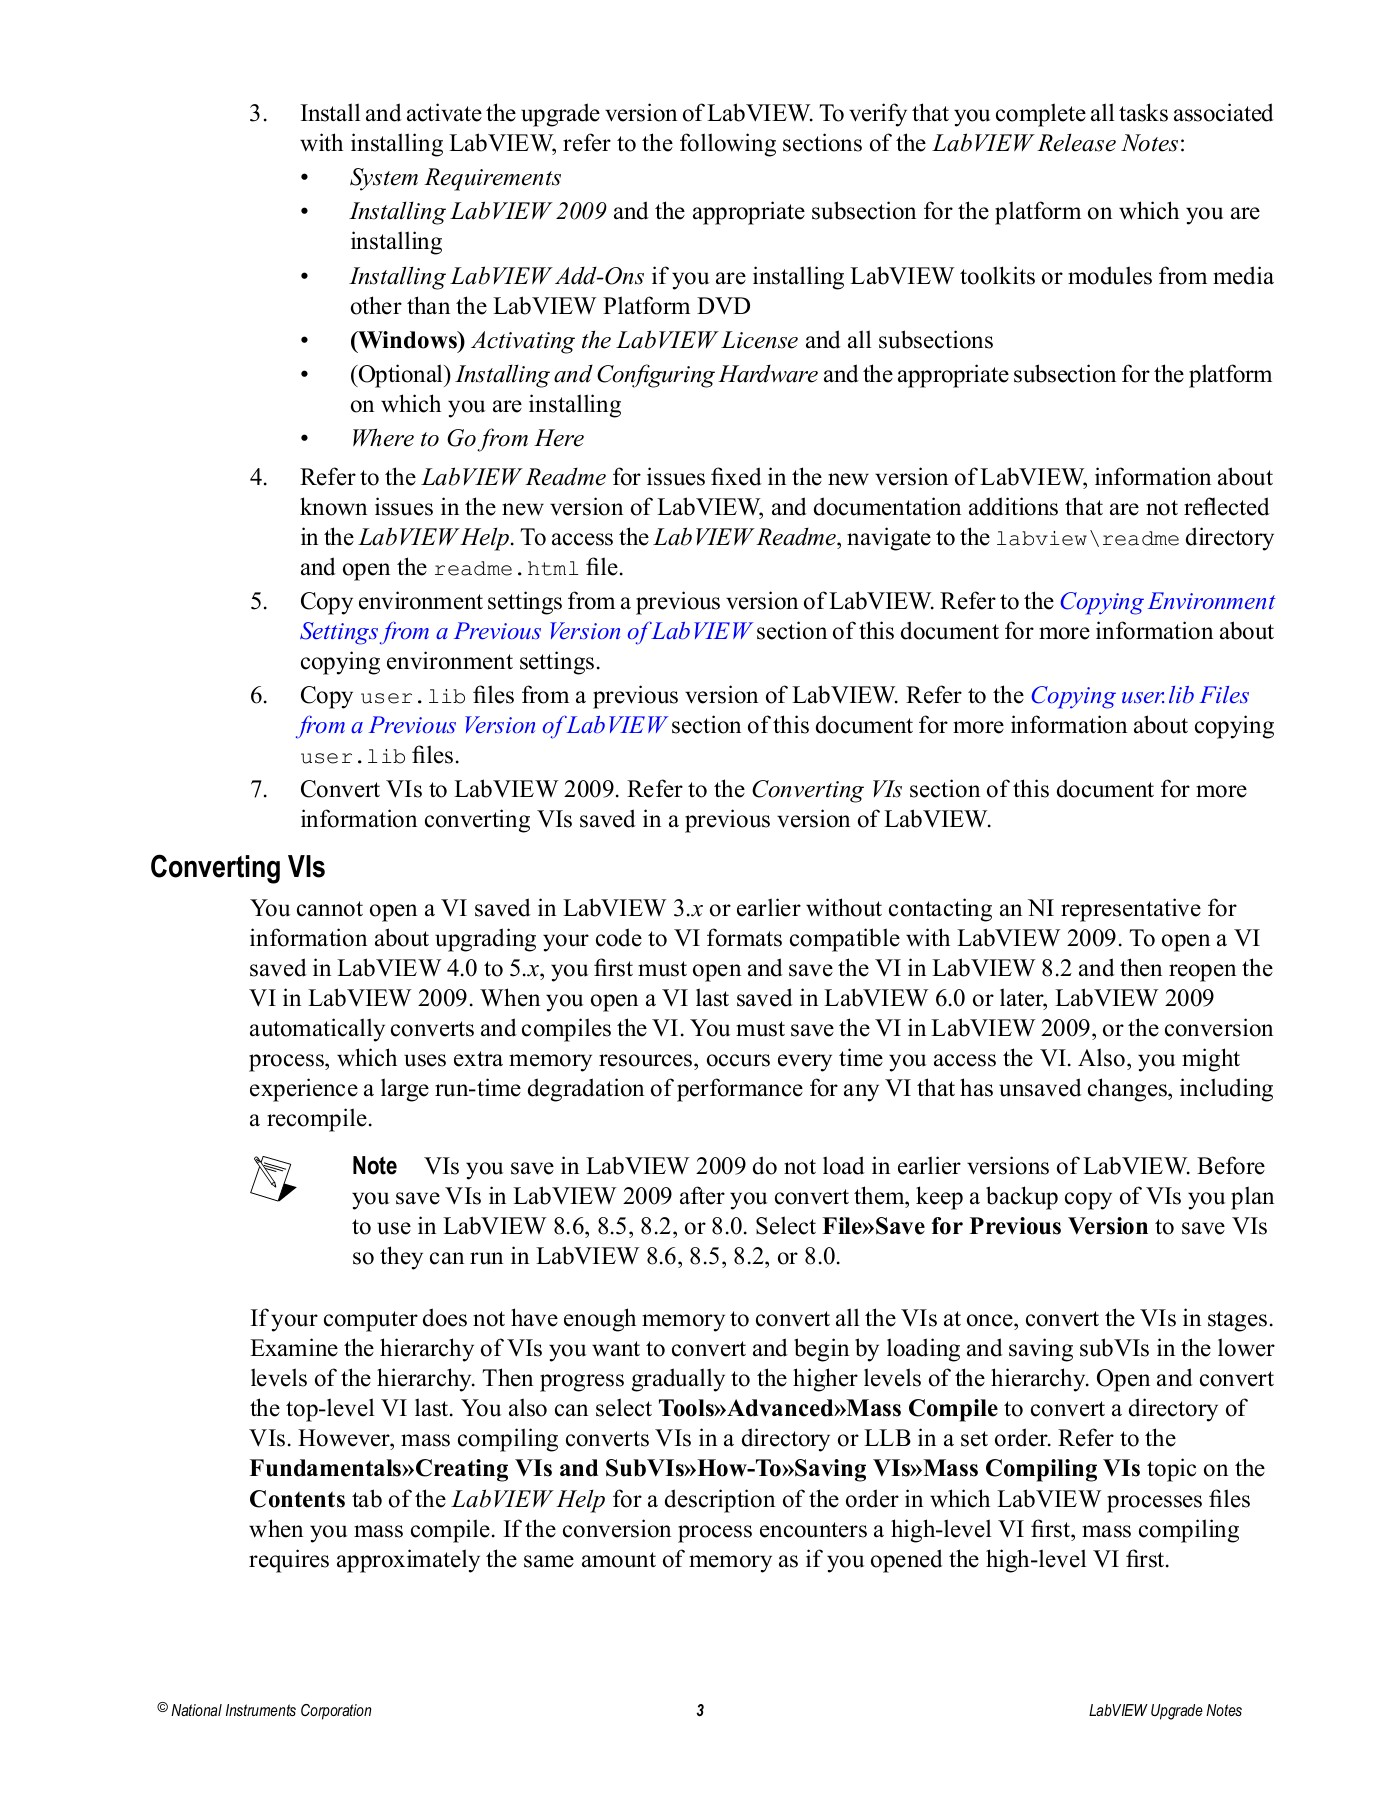 LabVIEW Upgrade Notes - National Instruments Pages 1 - 50 - Text